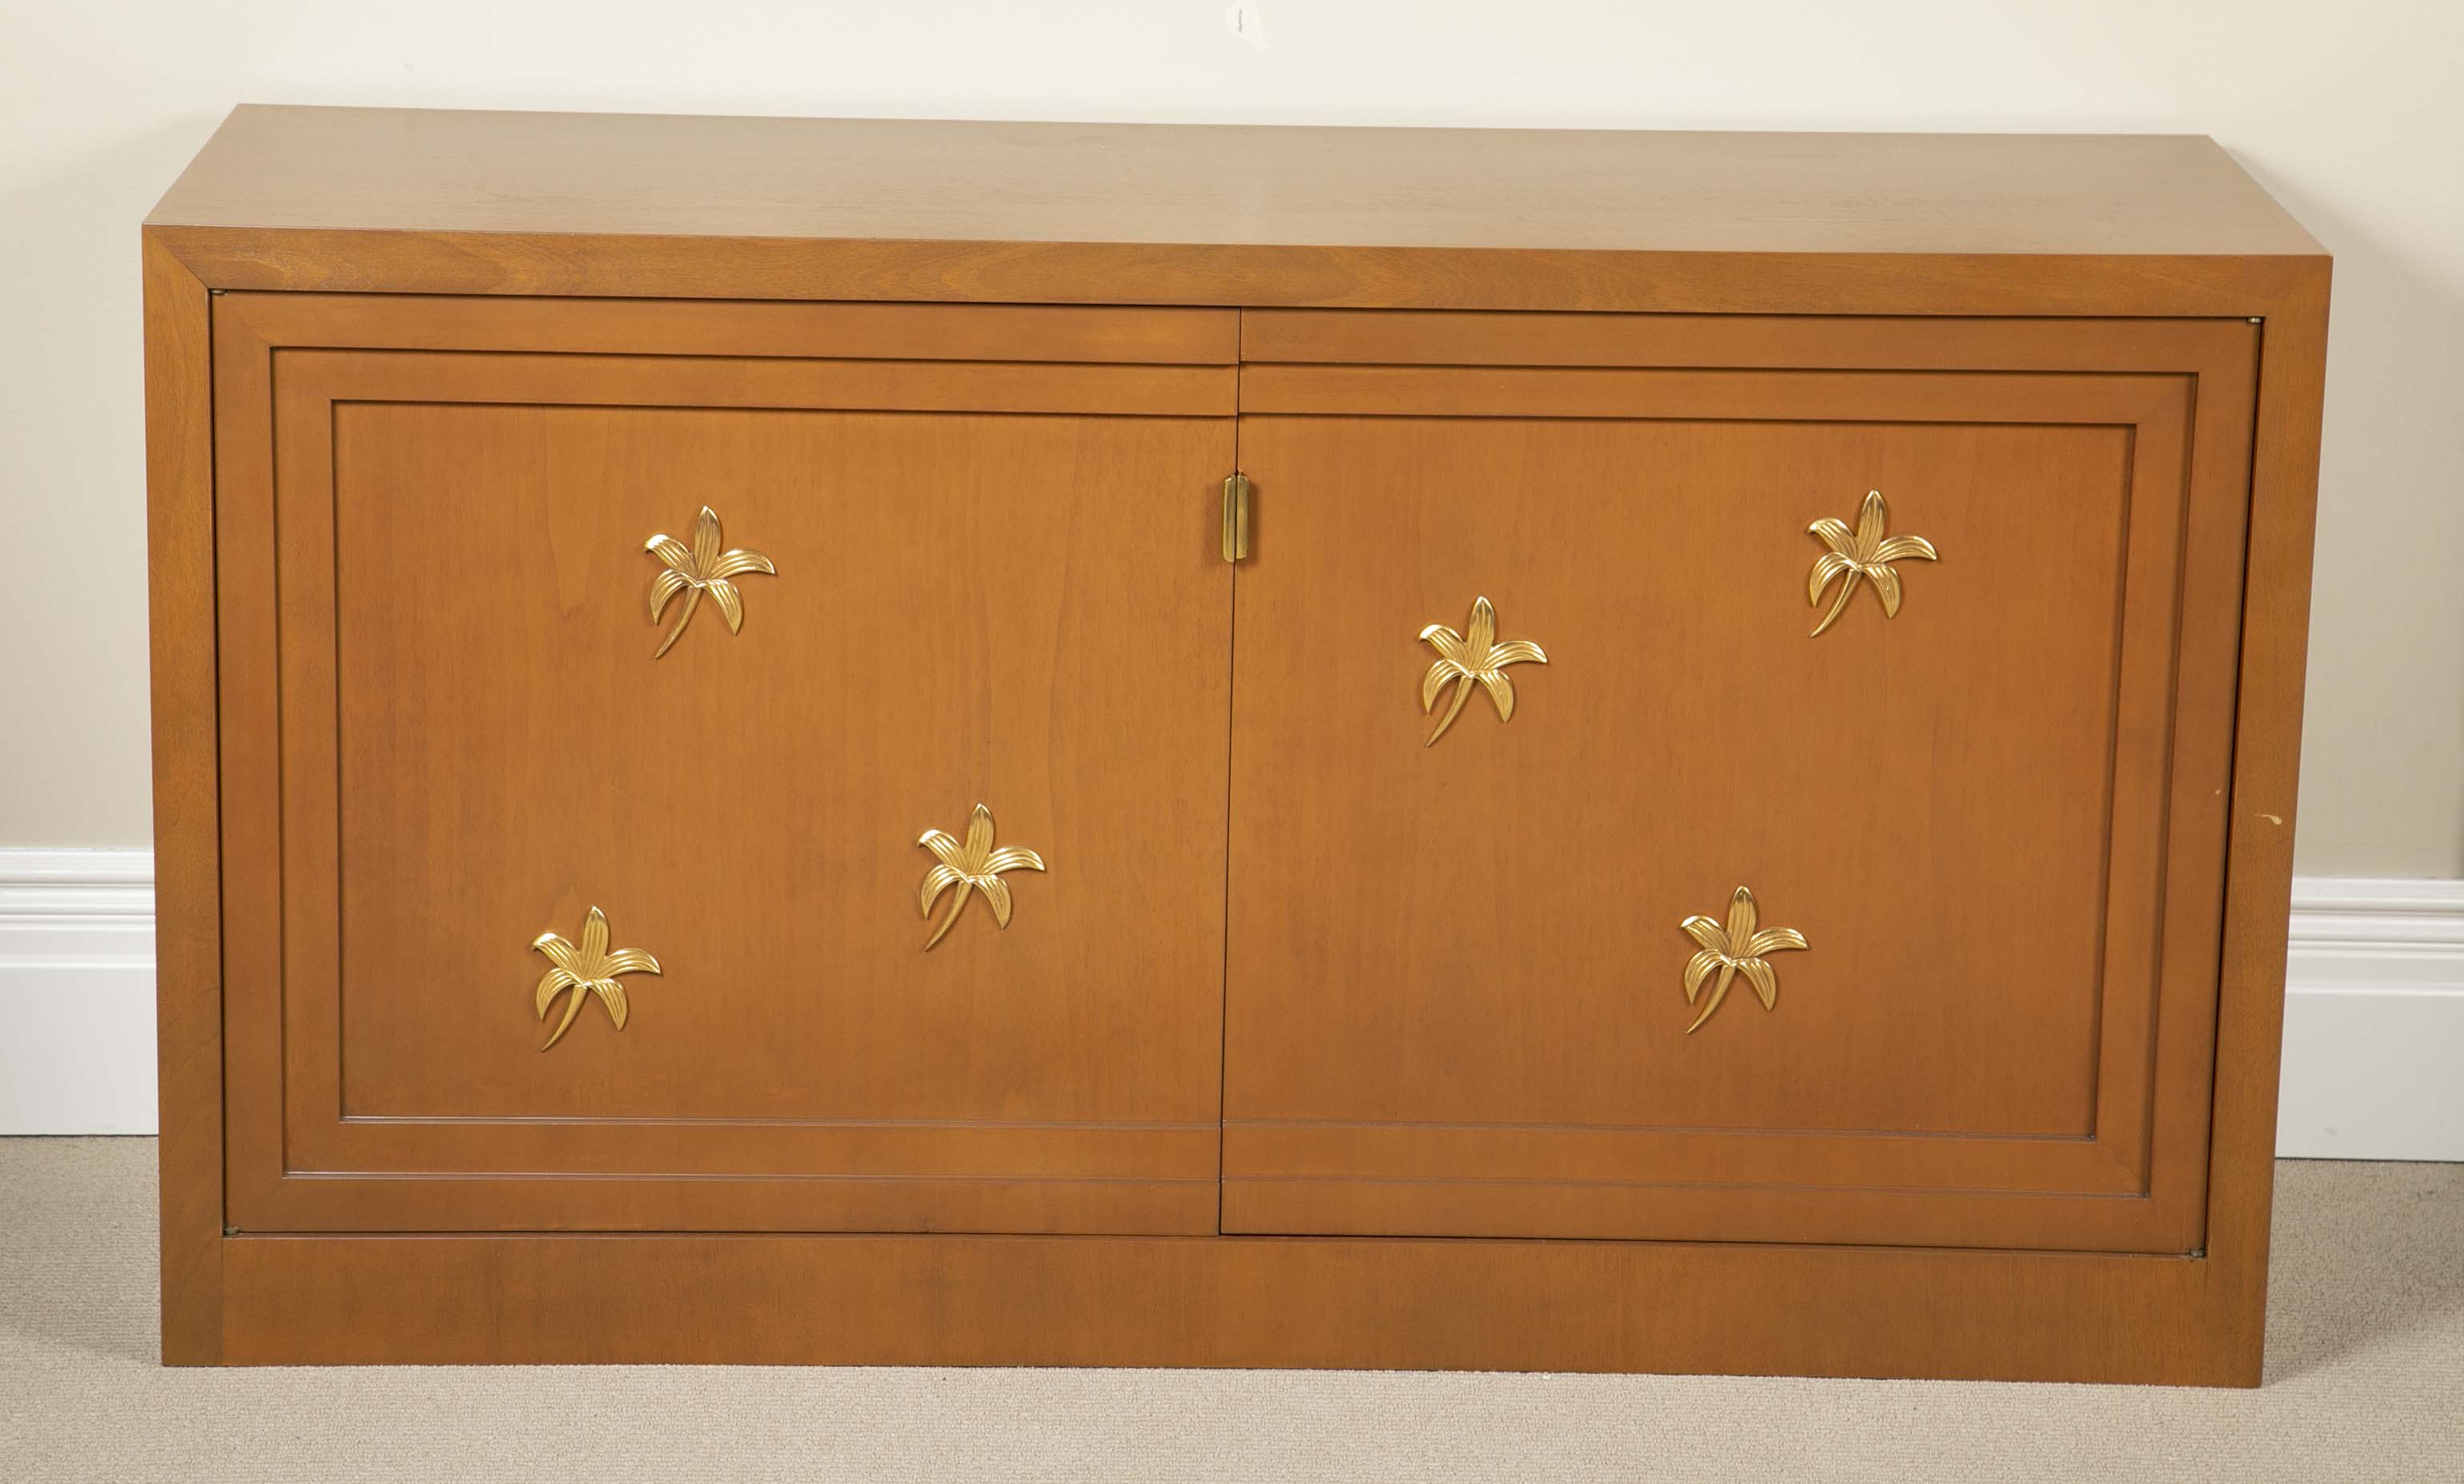 A Pair of T-H Robsjohn-Gibbings Cabinets for Saridis of Athens.